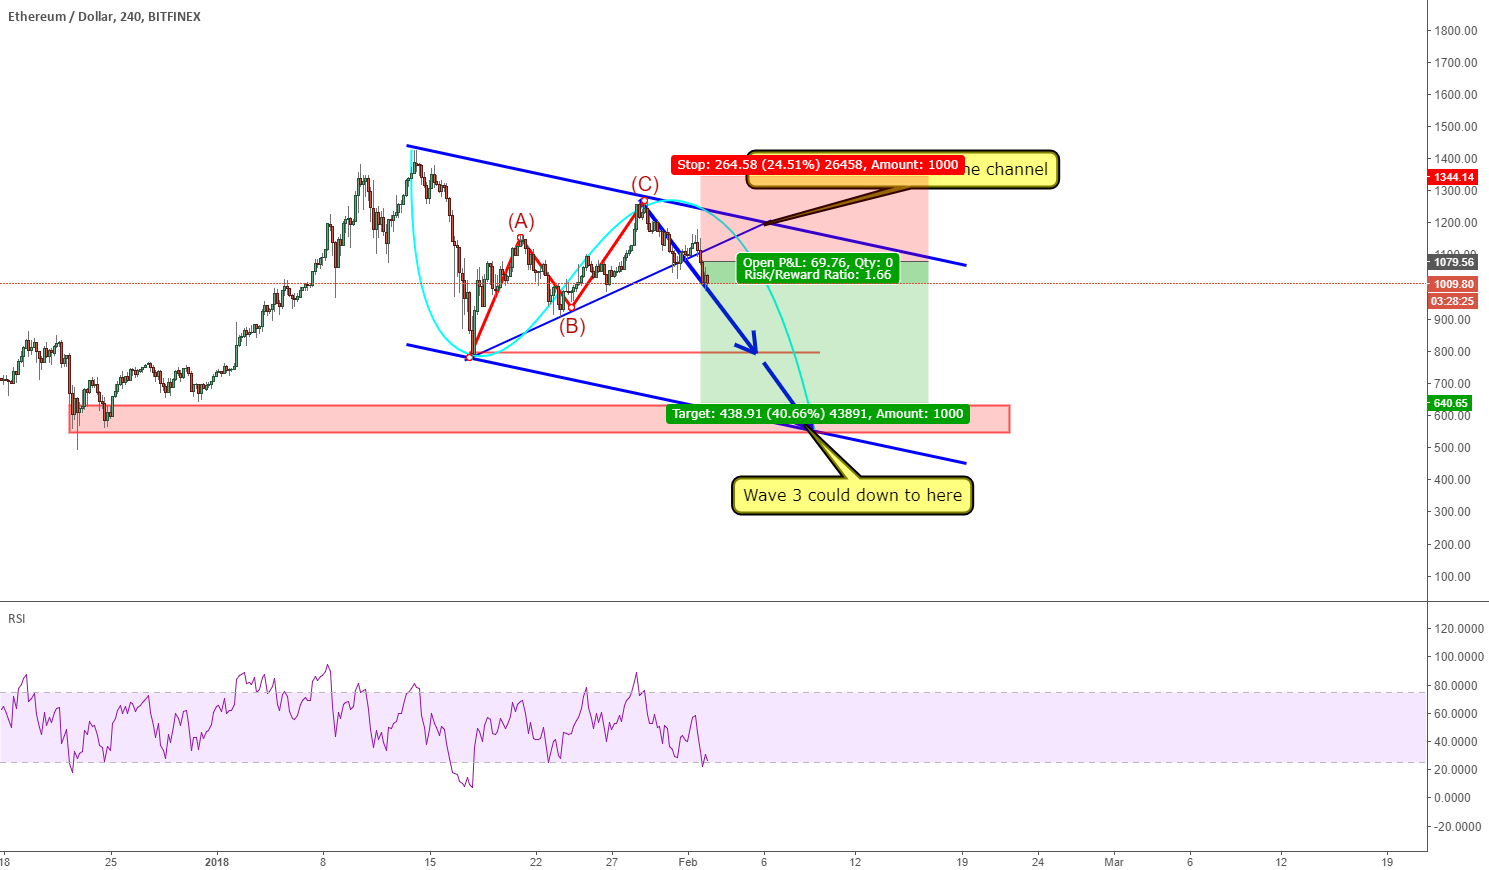 ETHUSD:  broken channel inside the channel